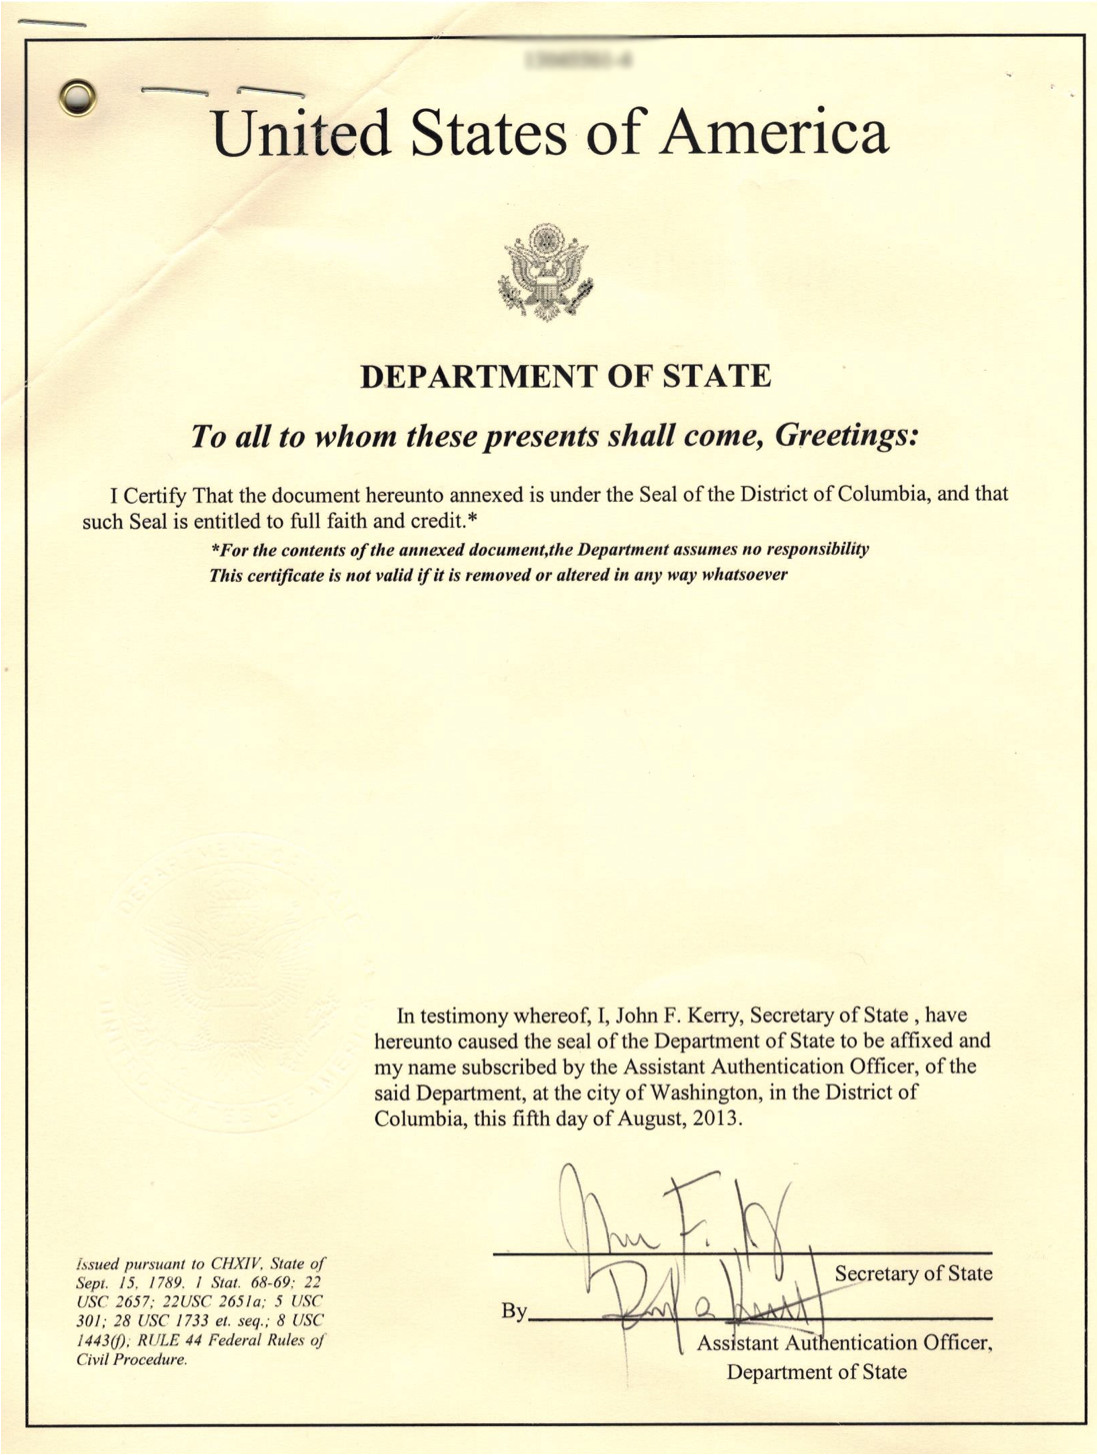 Us Department Of State Authentications Cover Letter Florida Apostille Cover Letter Example Udgereport270 Web